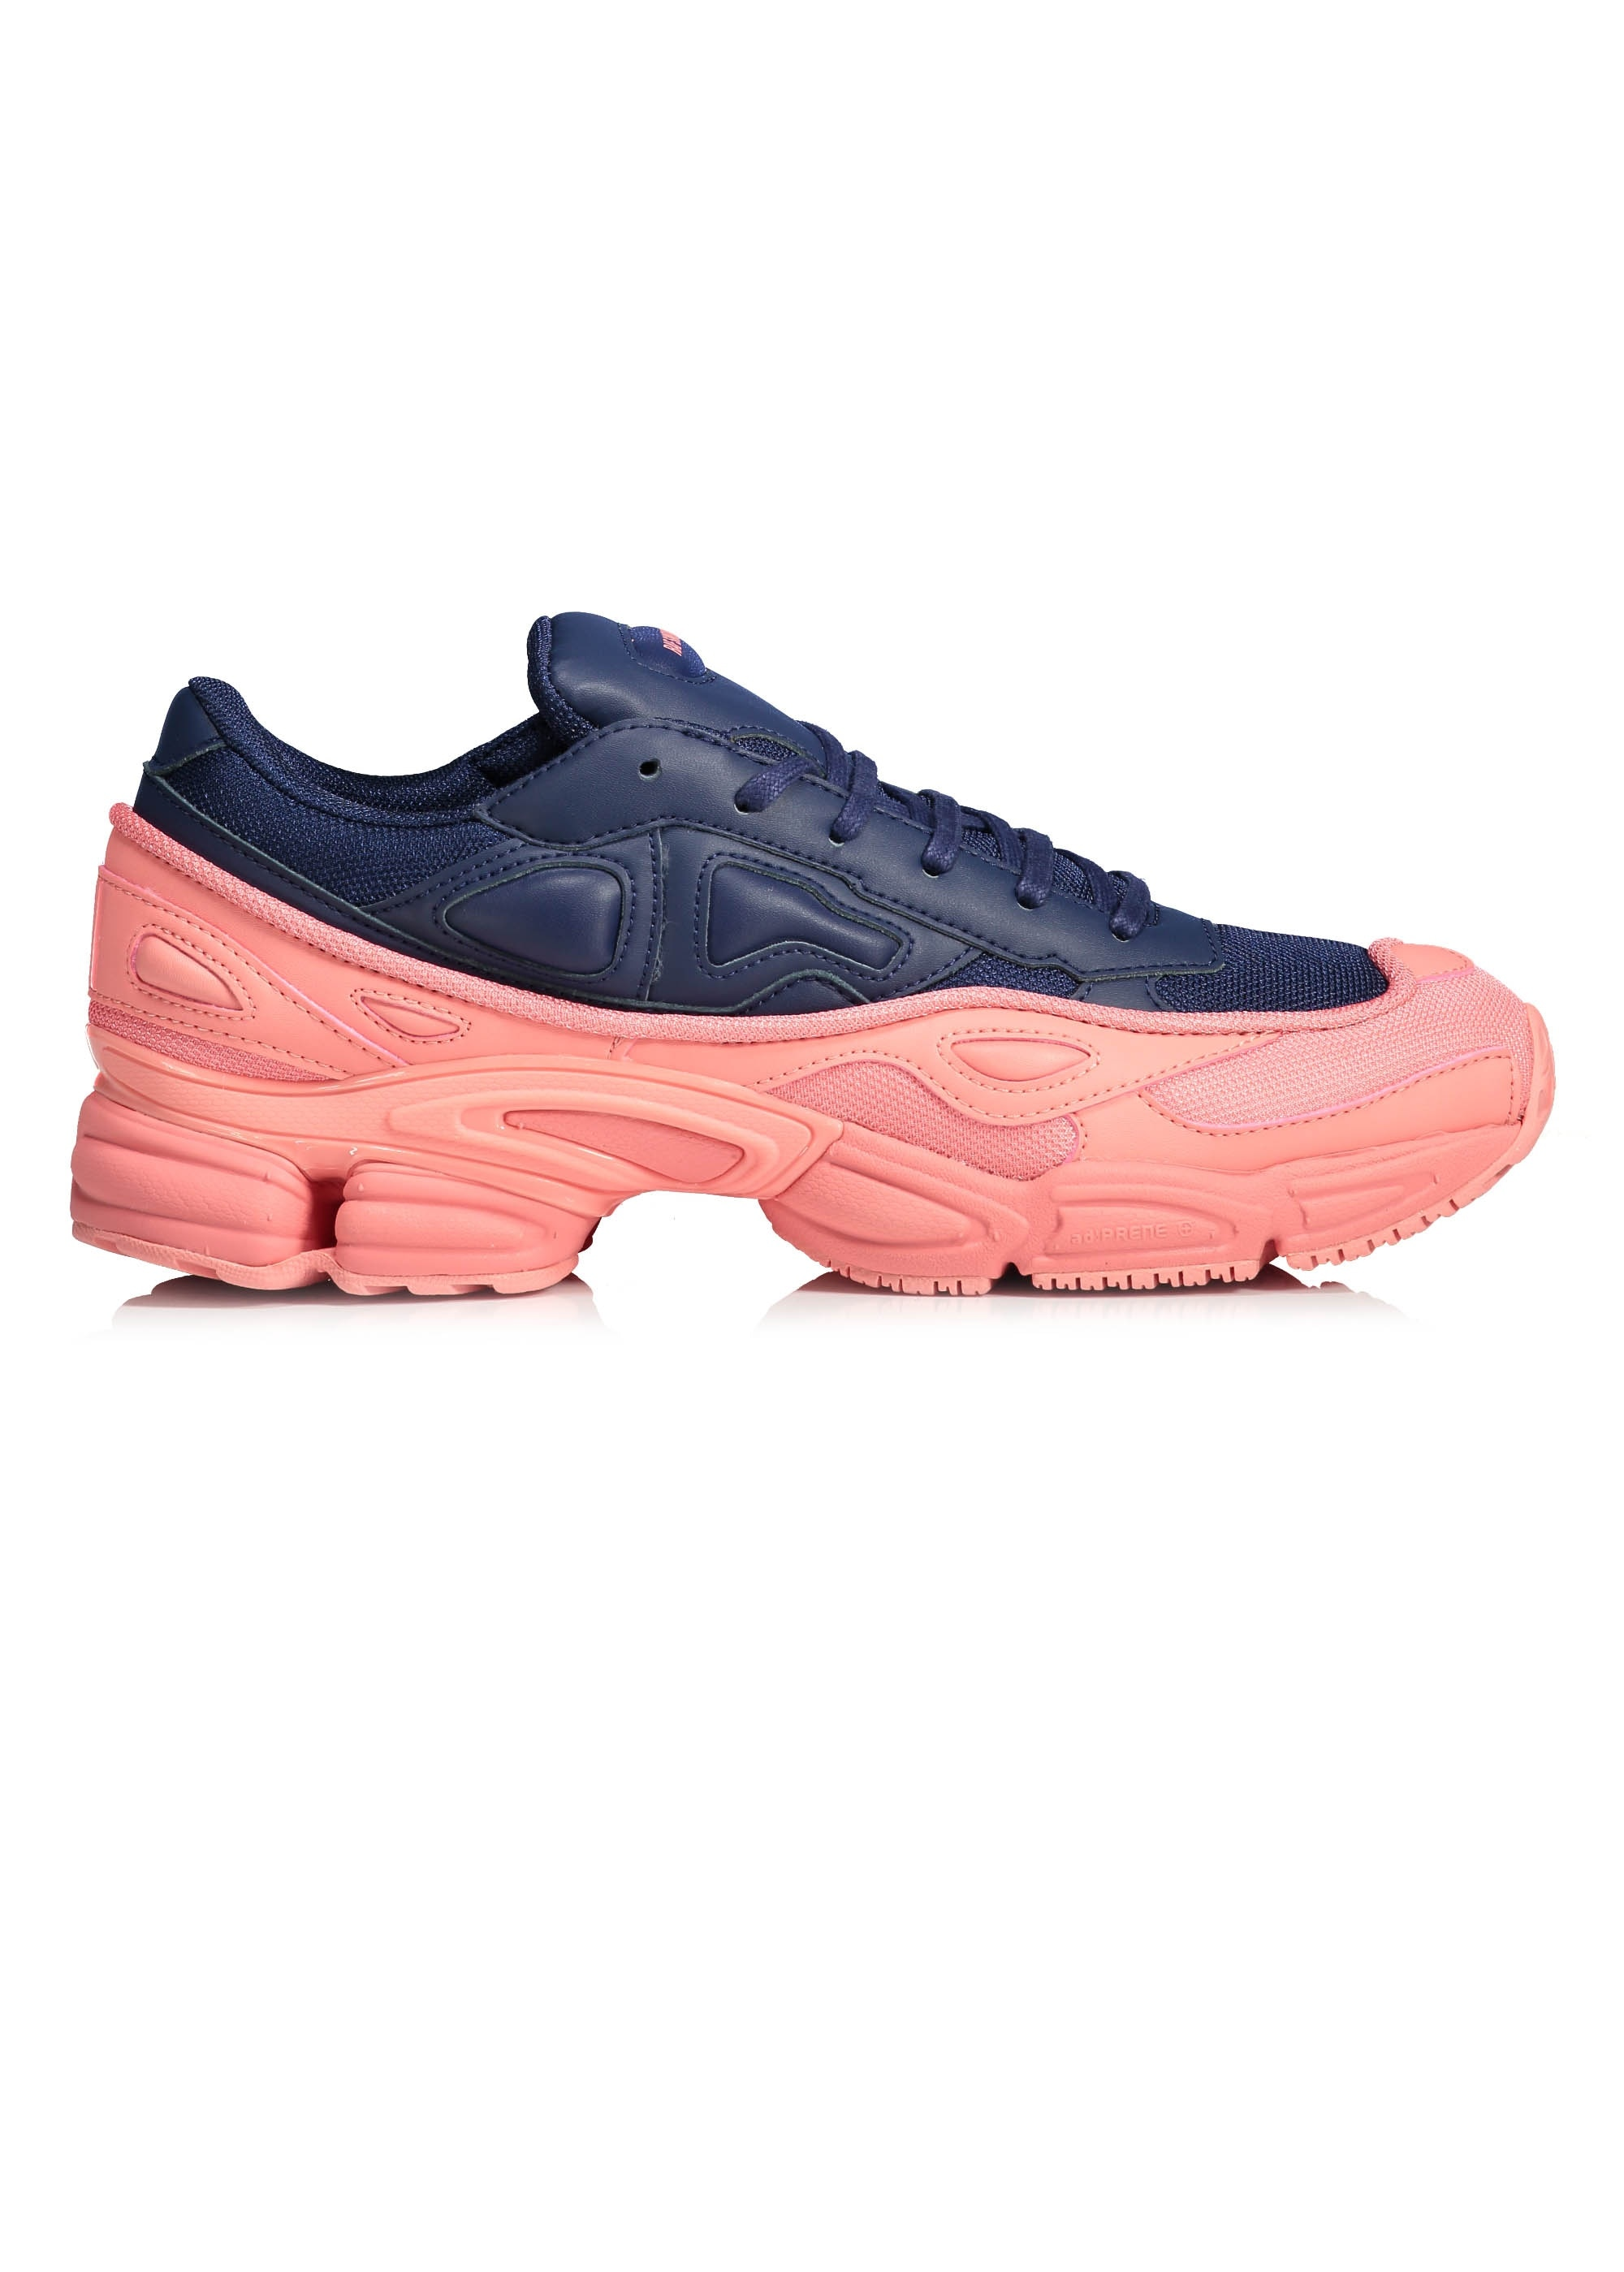 ea57a35fa8a9 adidas by Raf Simons RS Ozweego - Pink   Dark Blue - Trainers from ...